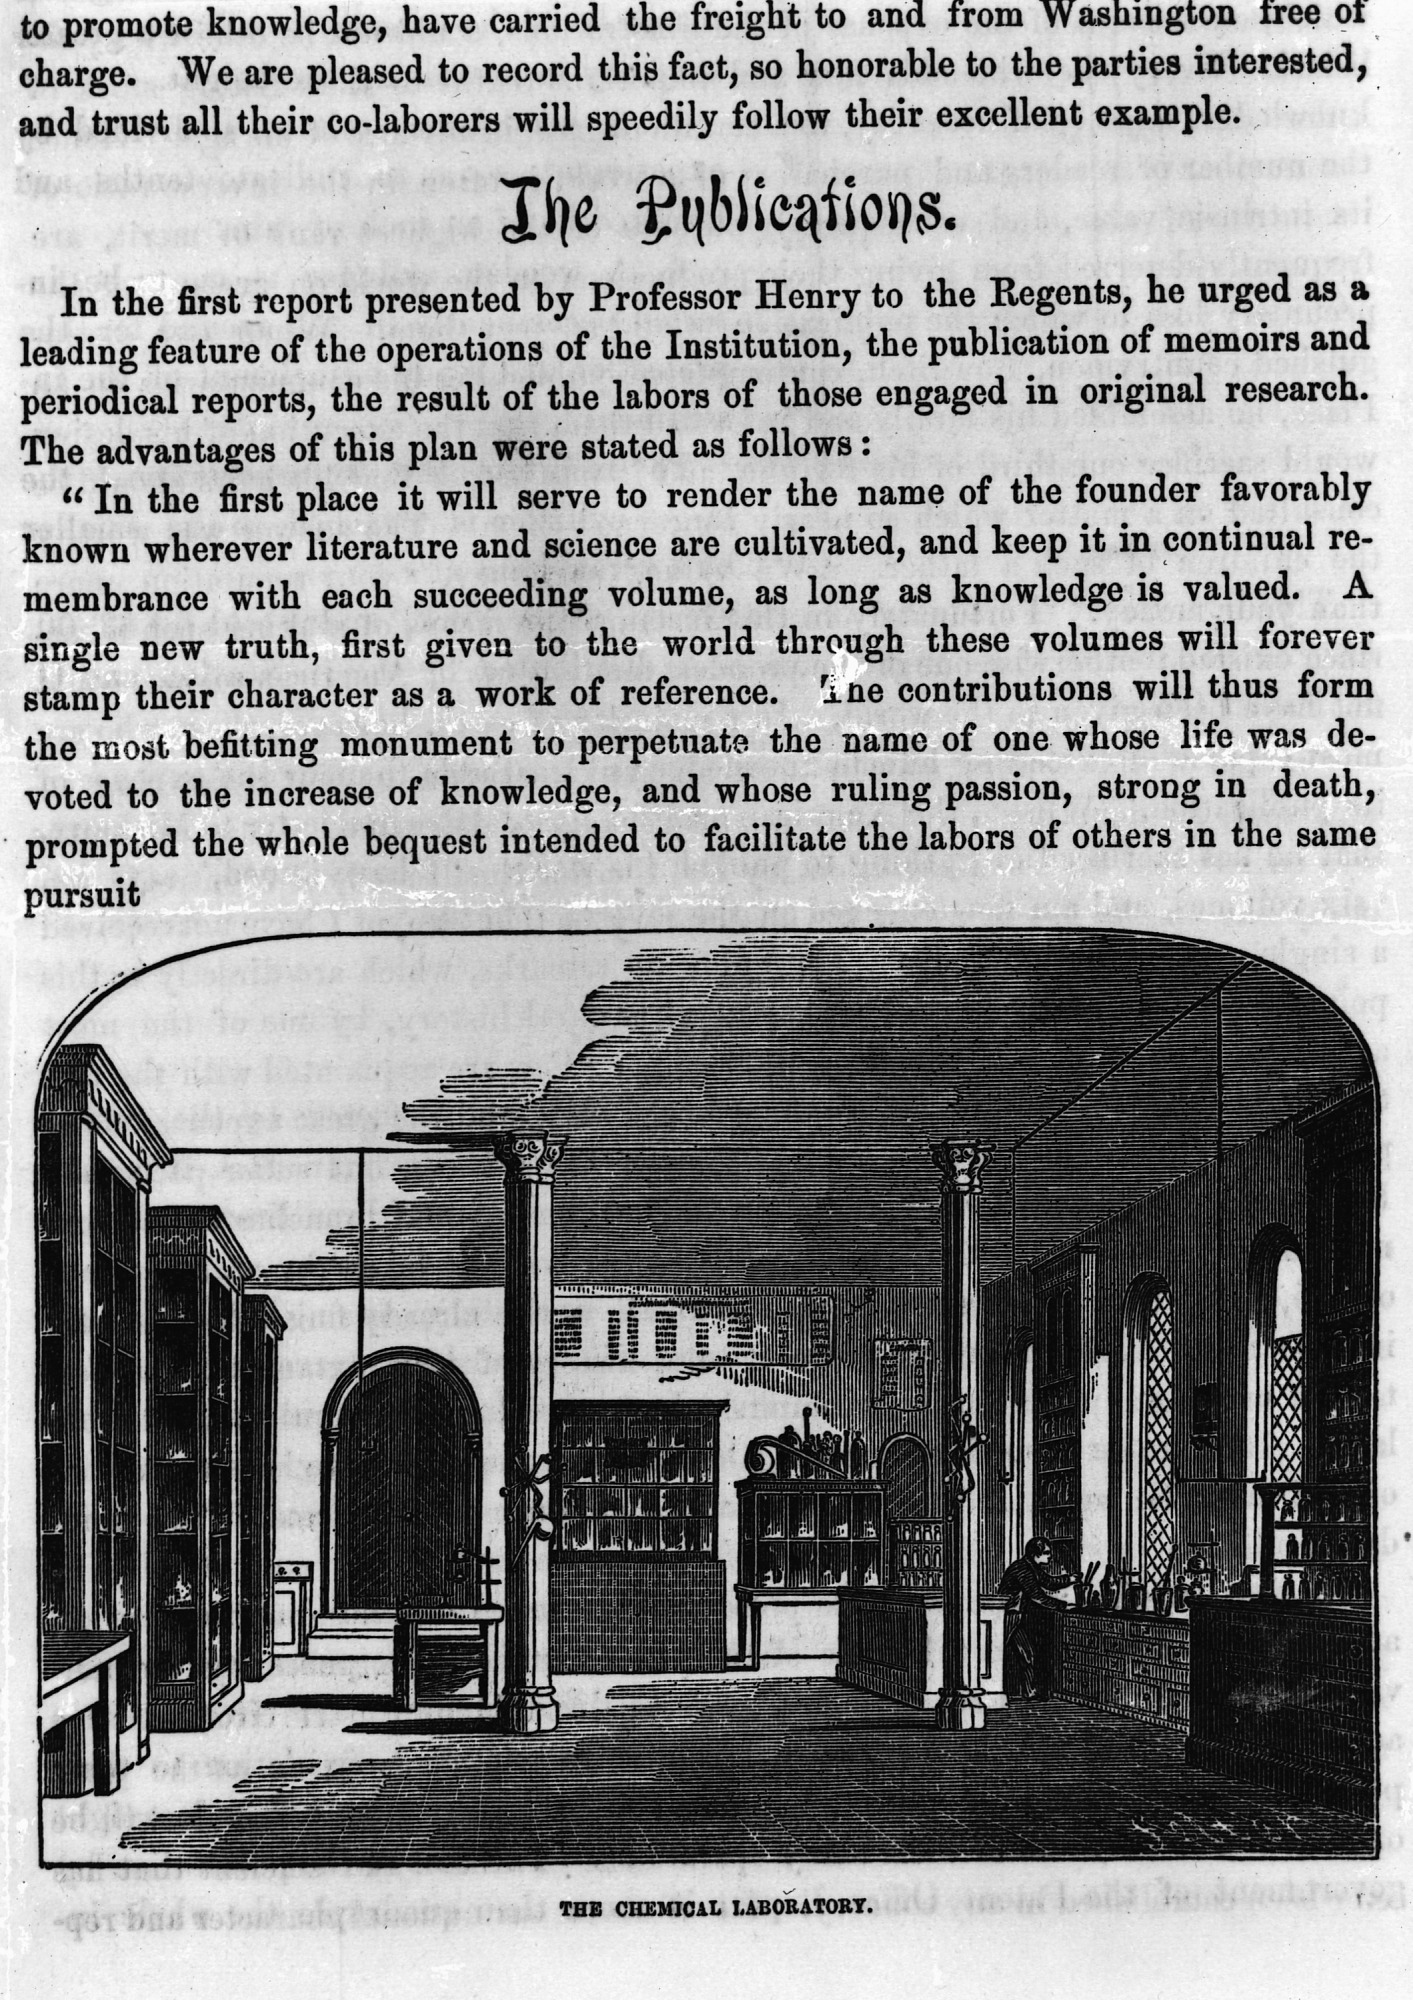 Chemical Laboratory, 1856